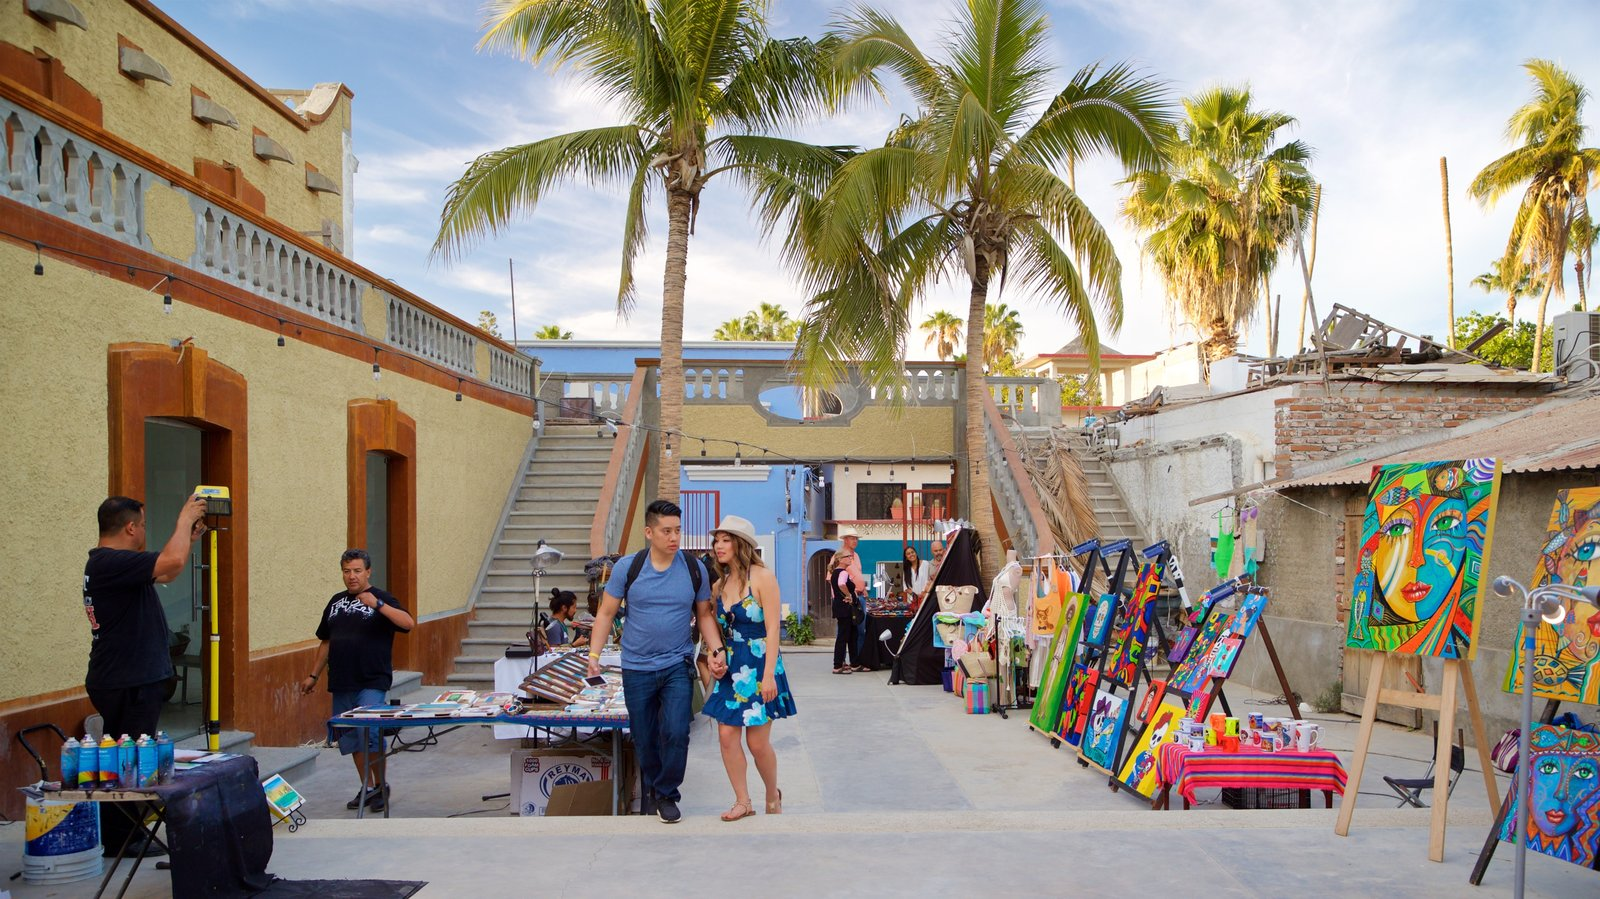 San Jose del Cabo Art District showing art, markets and street scenes